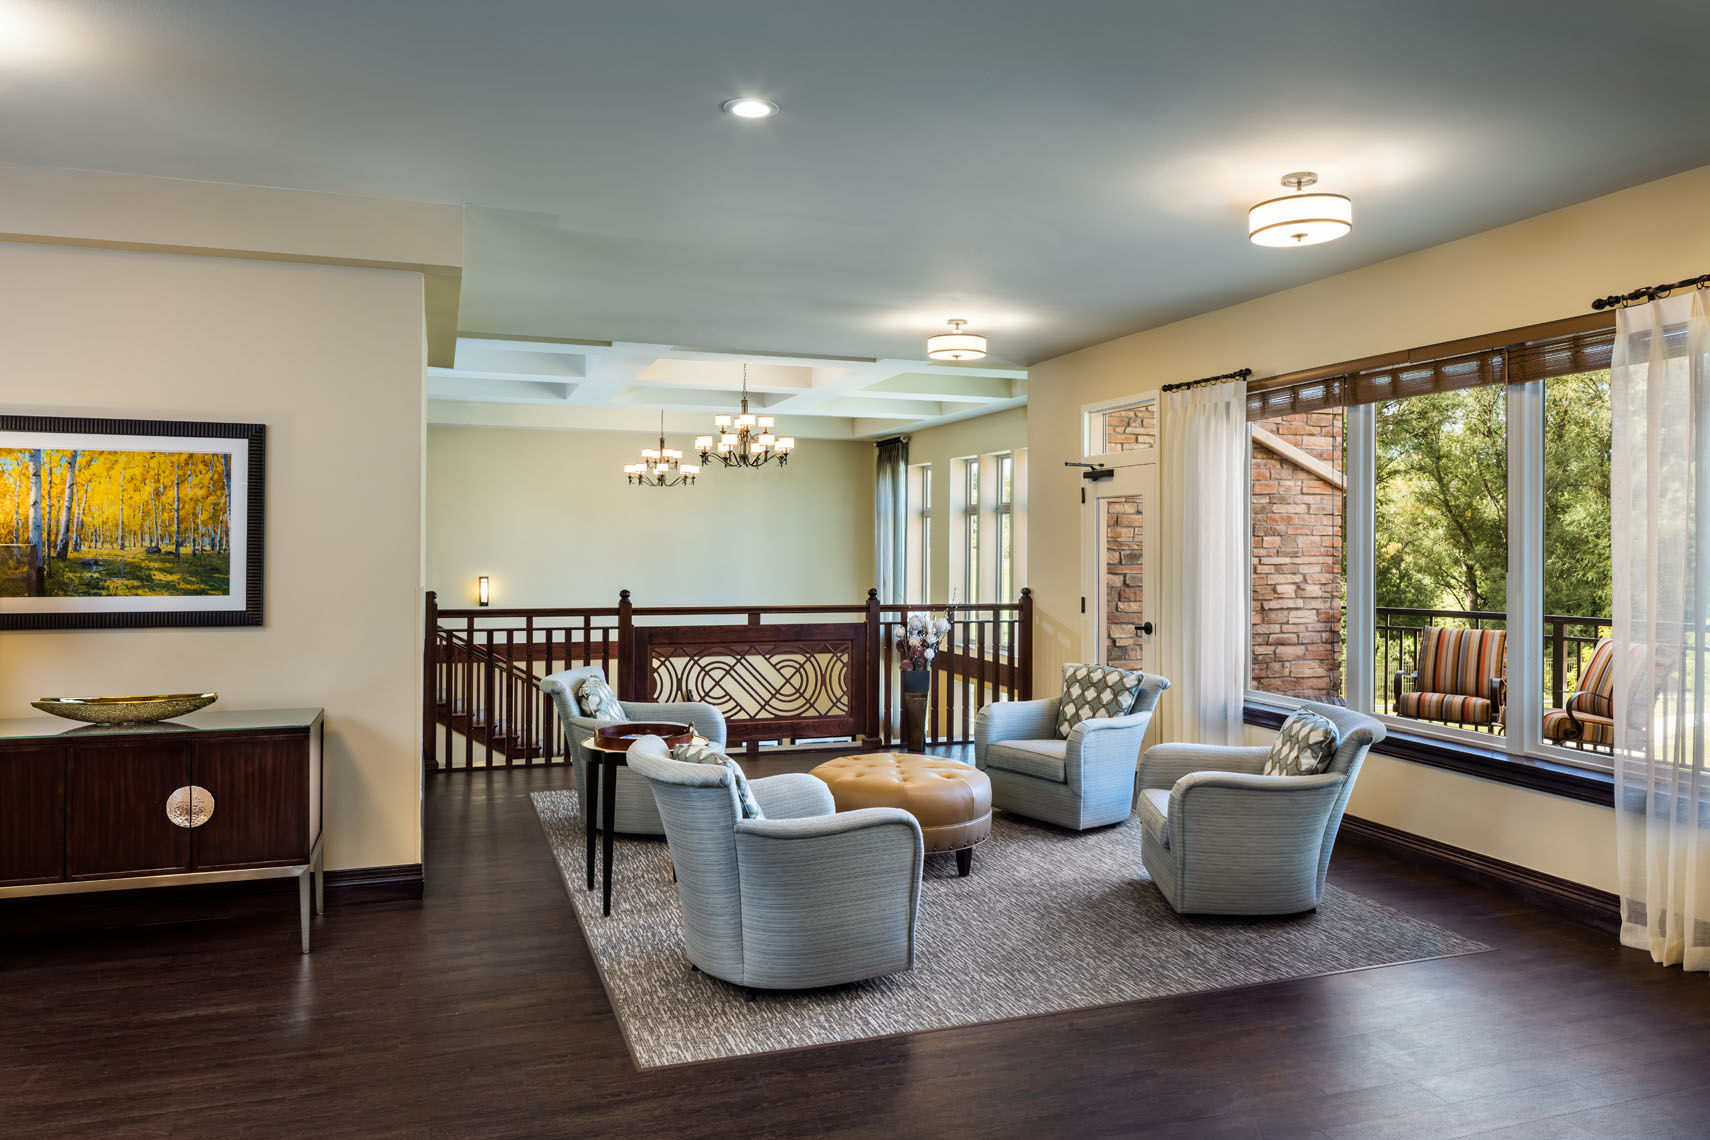 Senior living retirement facility /building interior photographed for the architect and interior designer in denver colorado